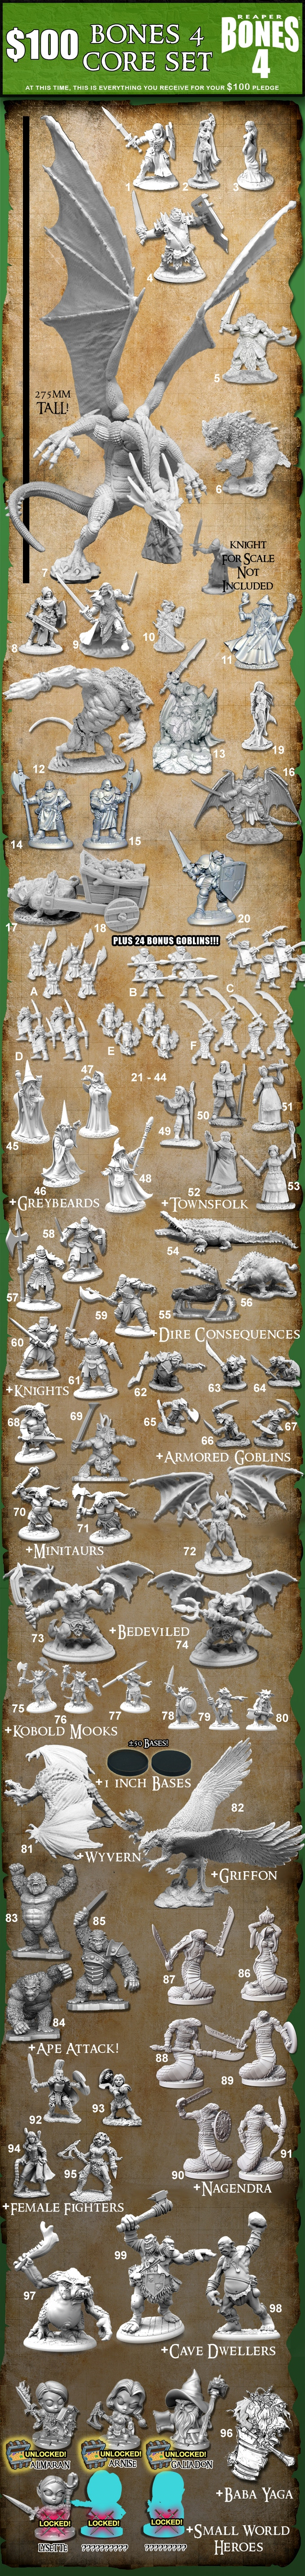 To receive a Core Set, Pledge $100, and select a Core Set in the Pledge Manager